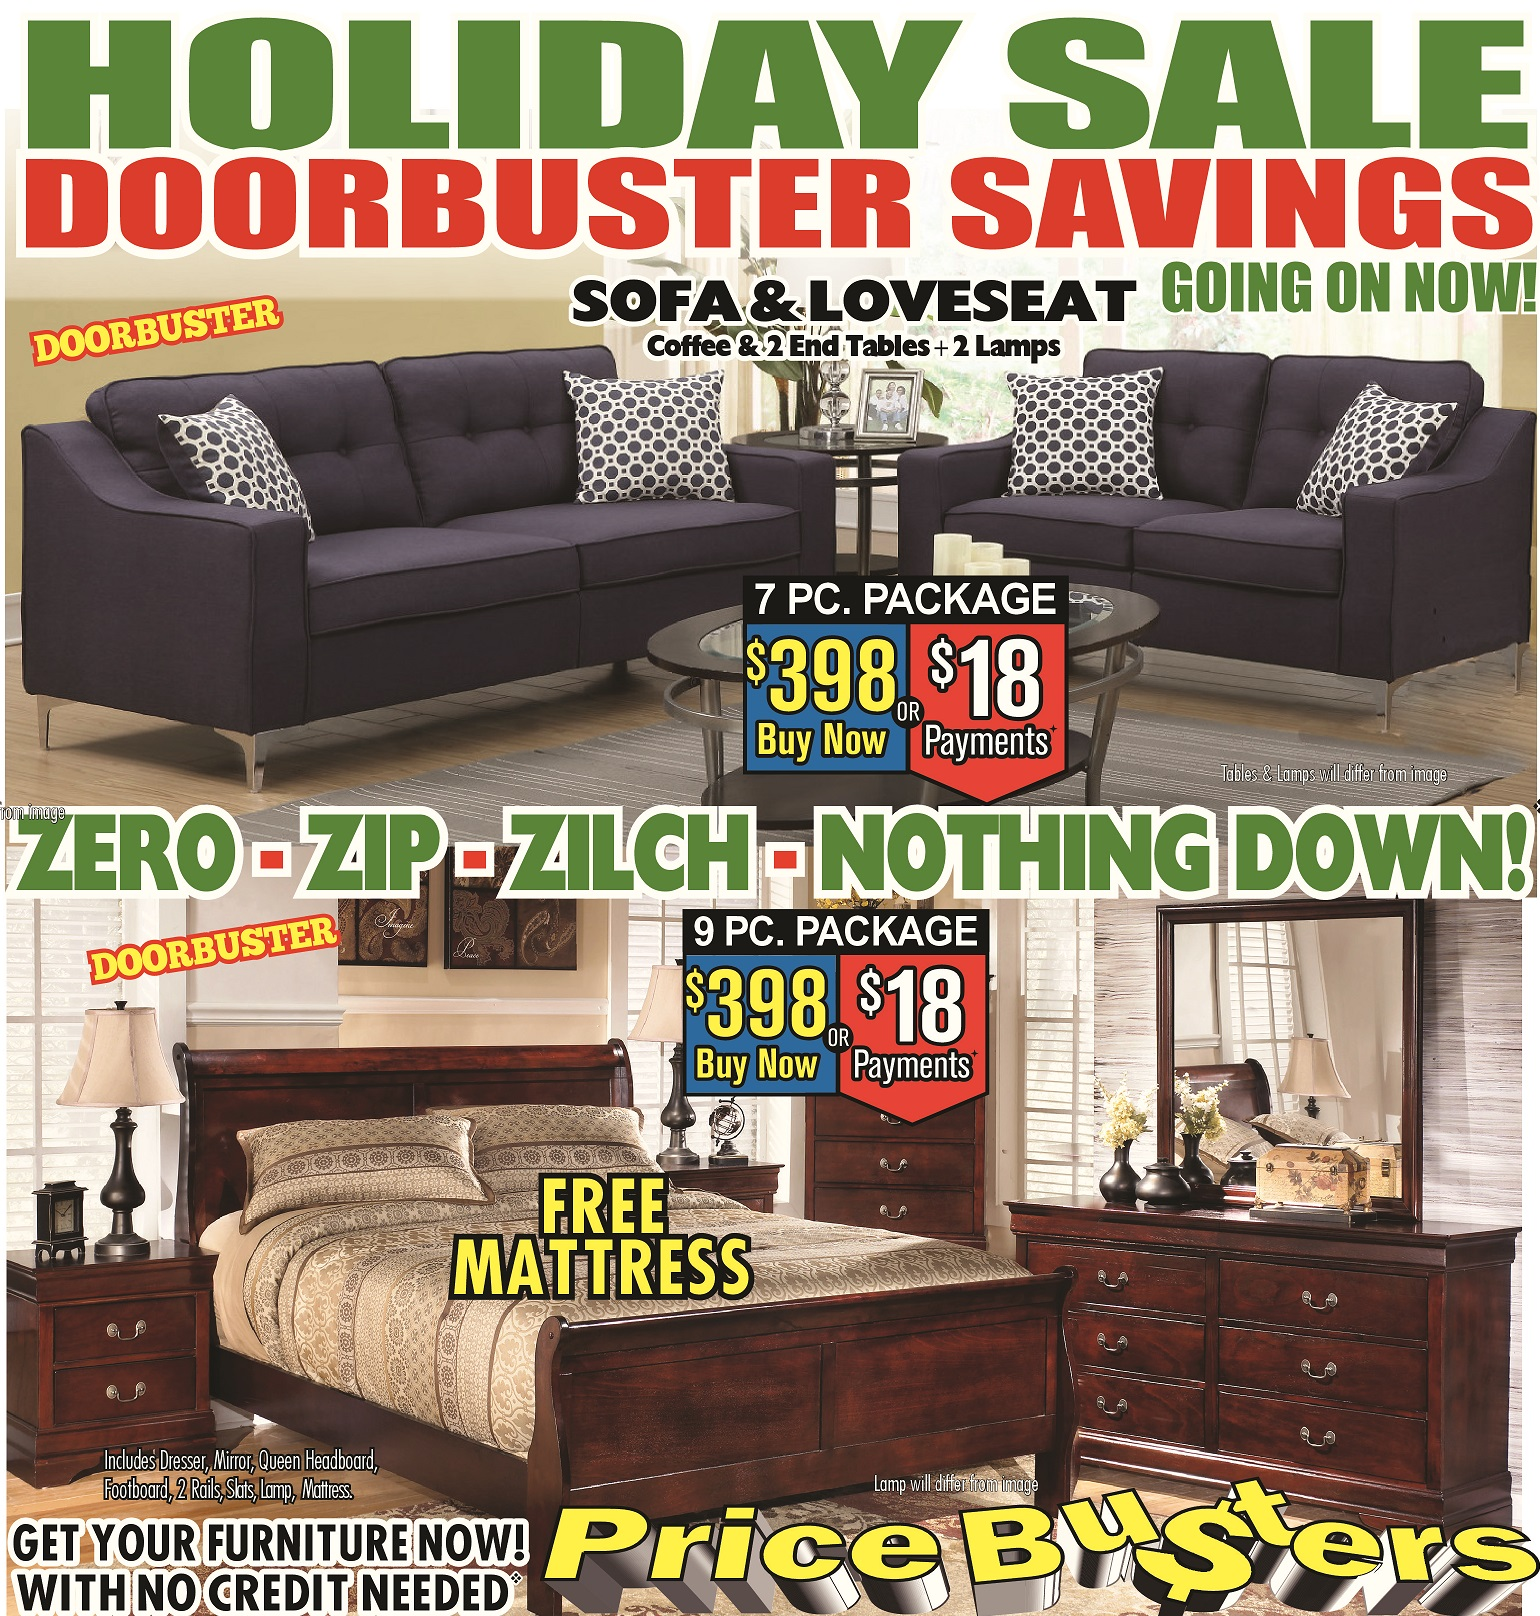 Price Busters Discount Furniture image 1